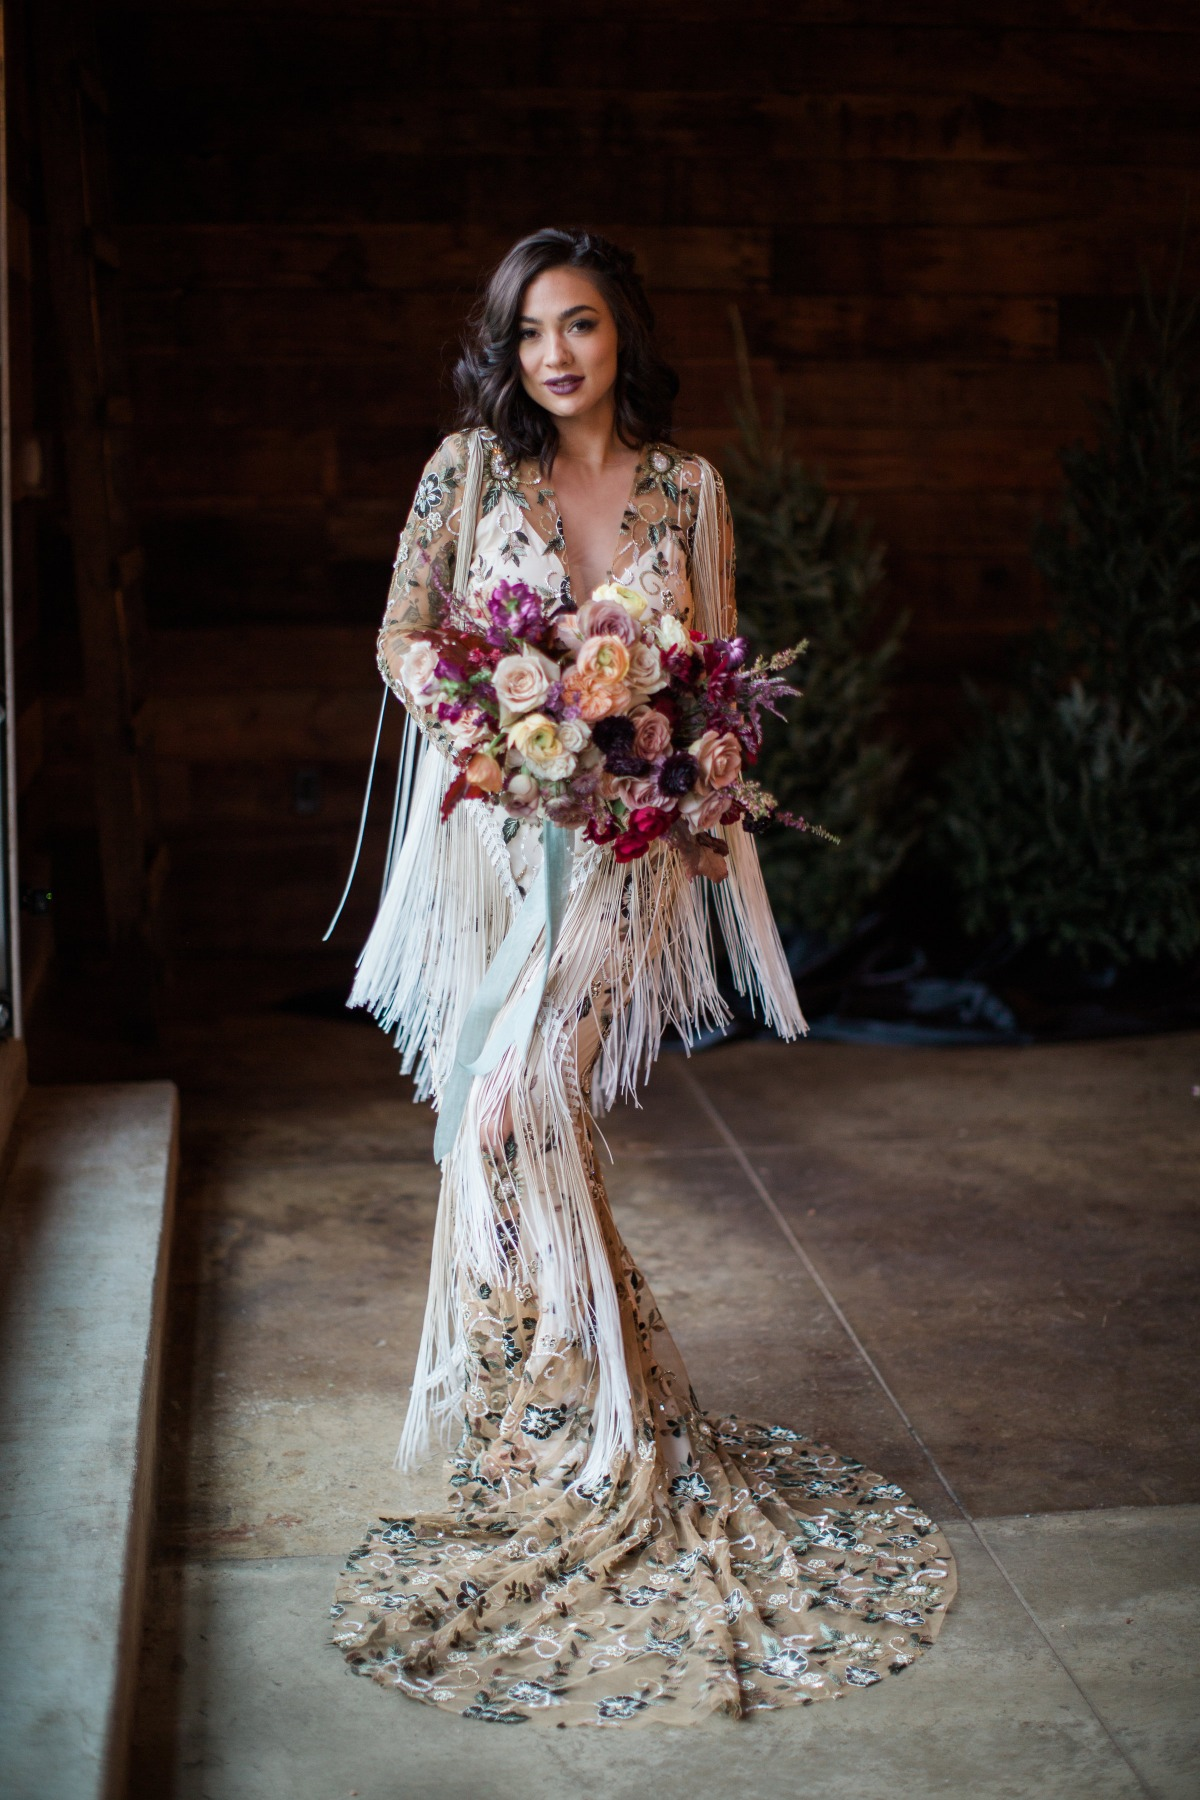 Boho winter wedding style in Rue De Seine